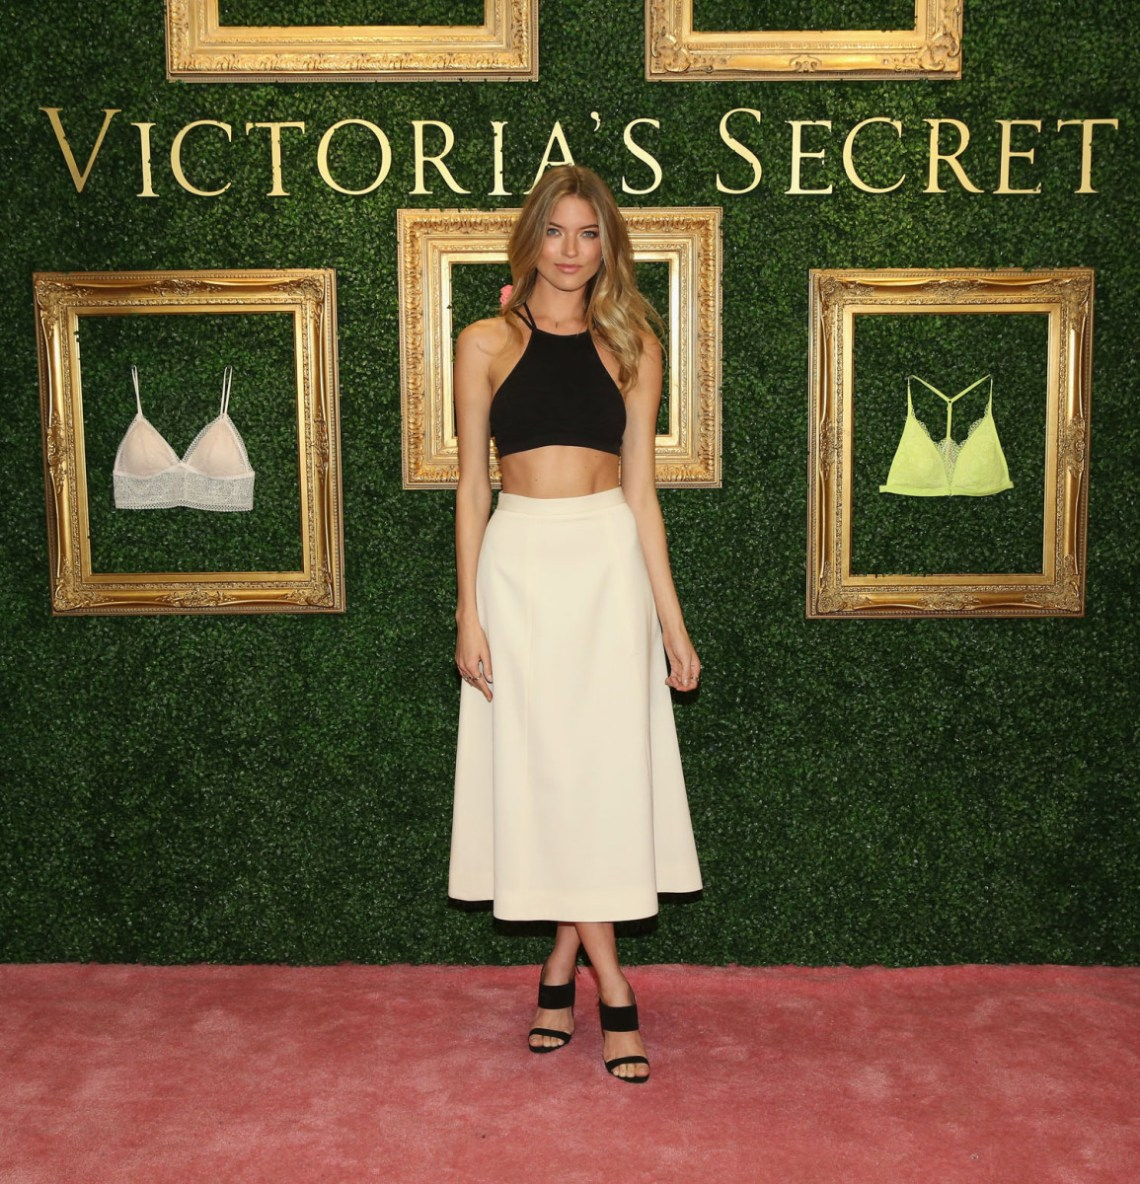 """NEW YORK, NEW YORK - APRIL 12:  Victoria's Secret Angel Martha Hunt hosts global media live stream to reveal Bralette Collection & launch multi-city tour at Victoria's Secret Herald Square on April 12, 2016 in New York City  (Photo by Cindy Ord/Getty Images for Victoria's Secret)"""